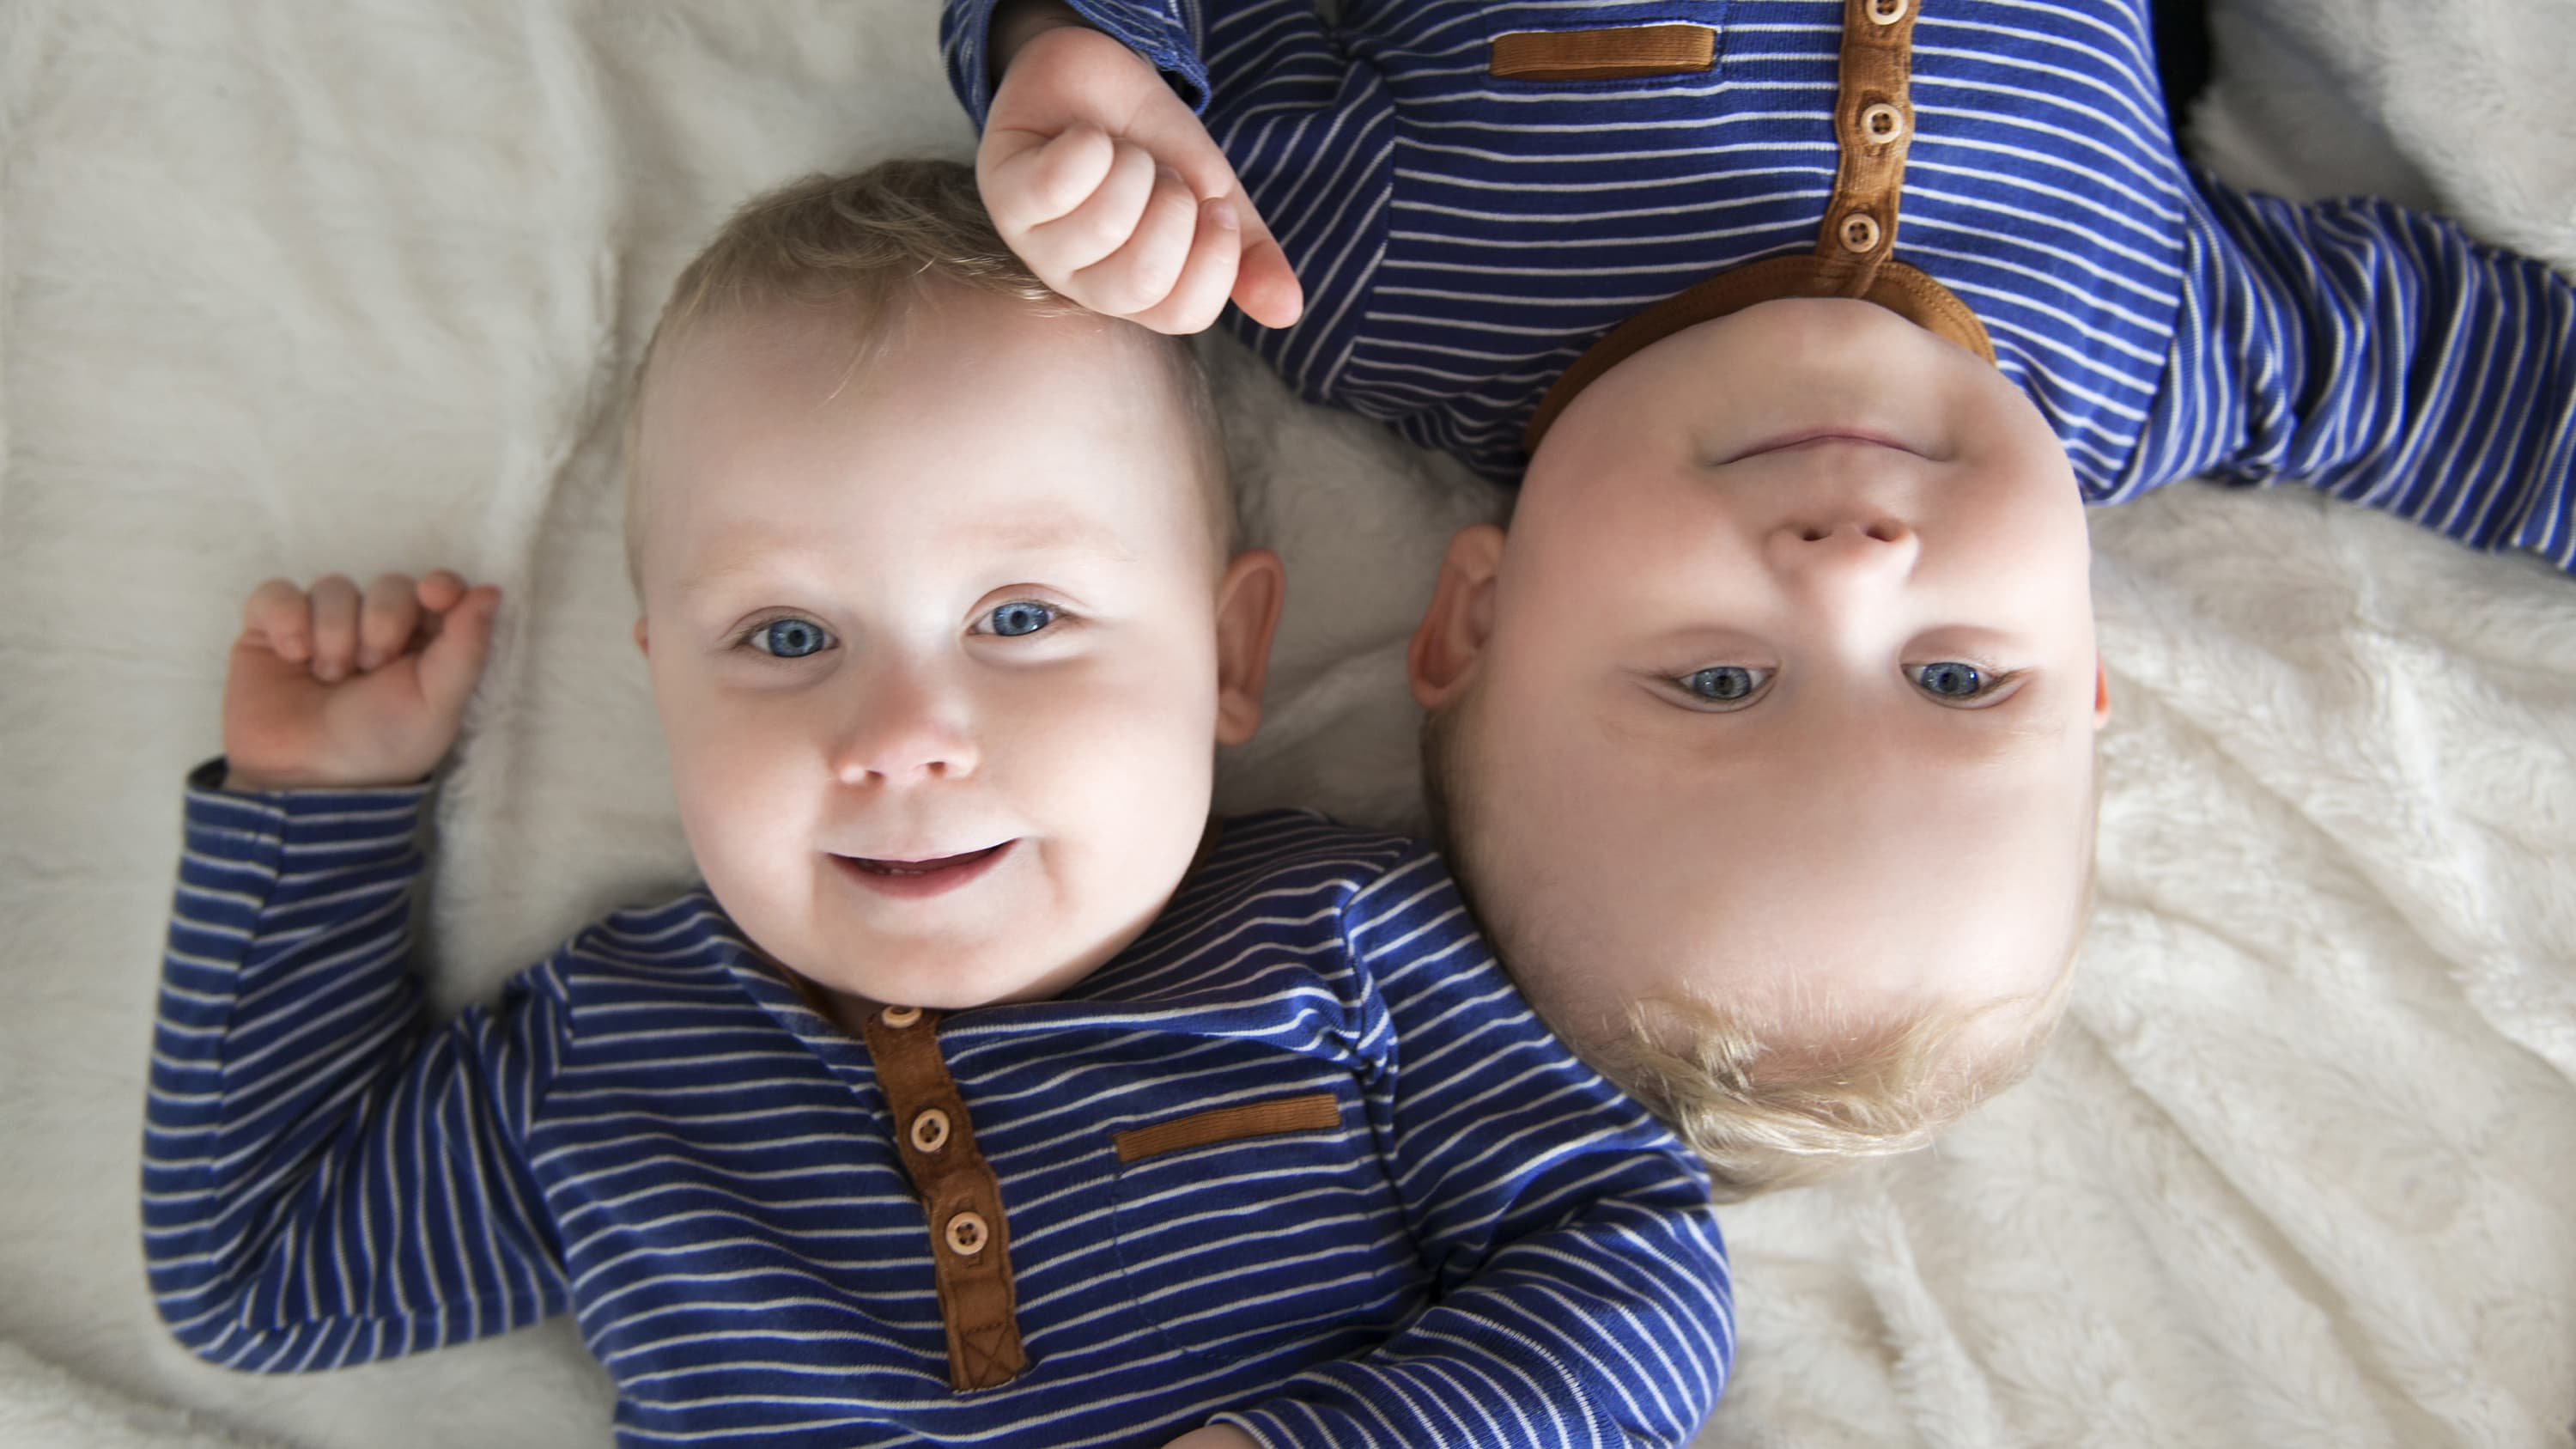 Twin boys, possibly after treatment for twin-to-twin transfusion syndrome